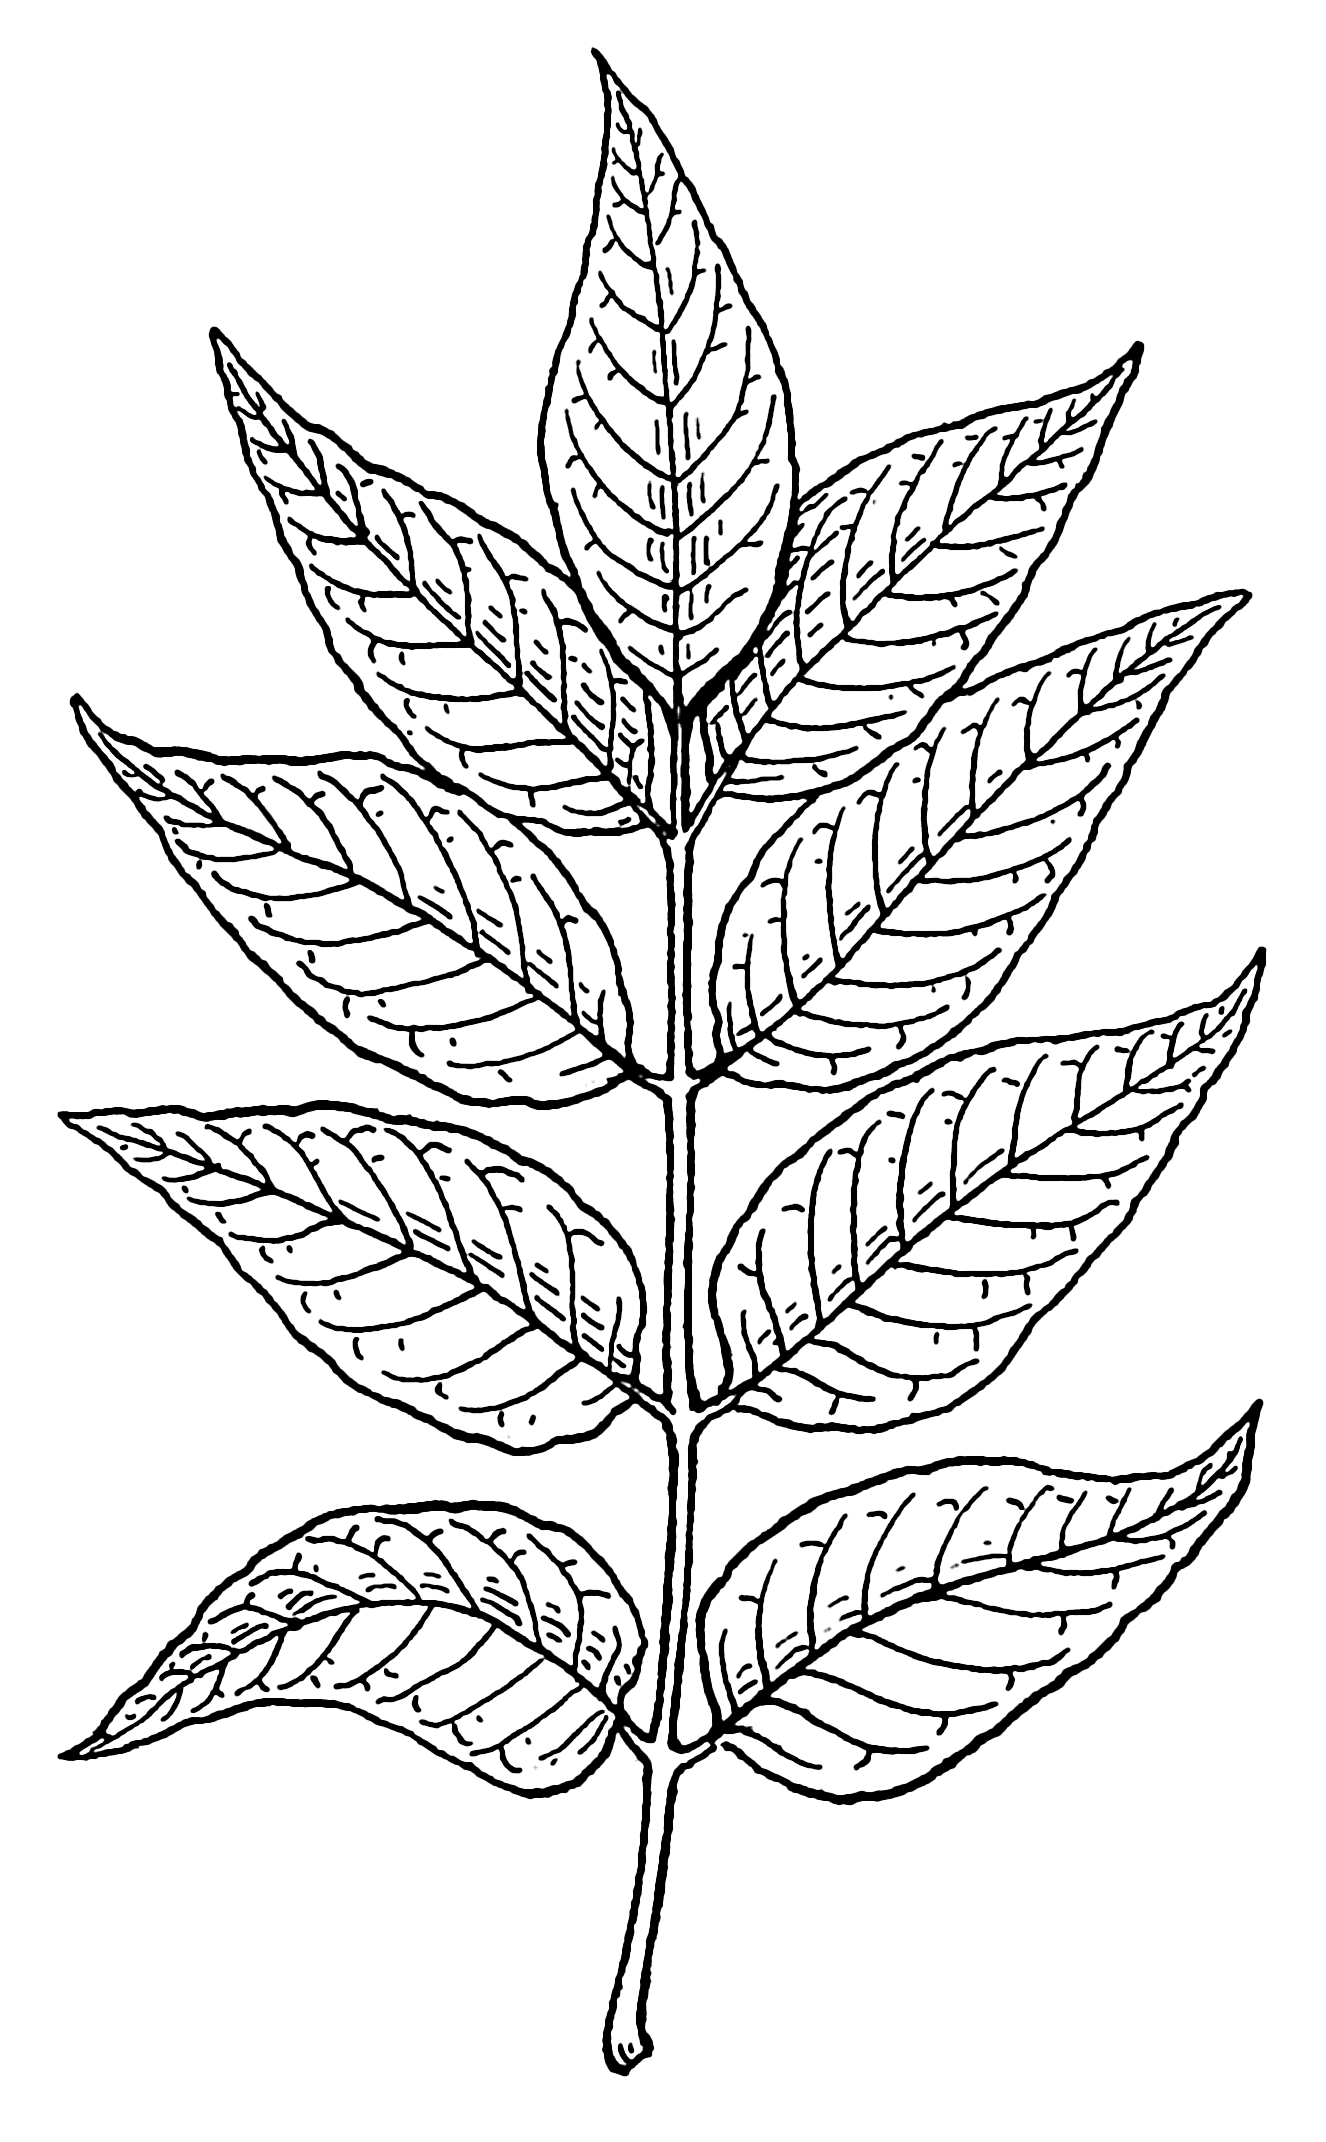 Flower Leaf Line Drawing : Drawings of leaves sketches description ash psf